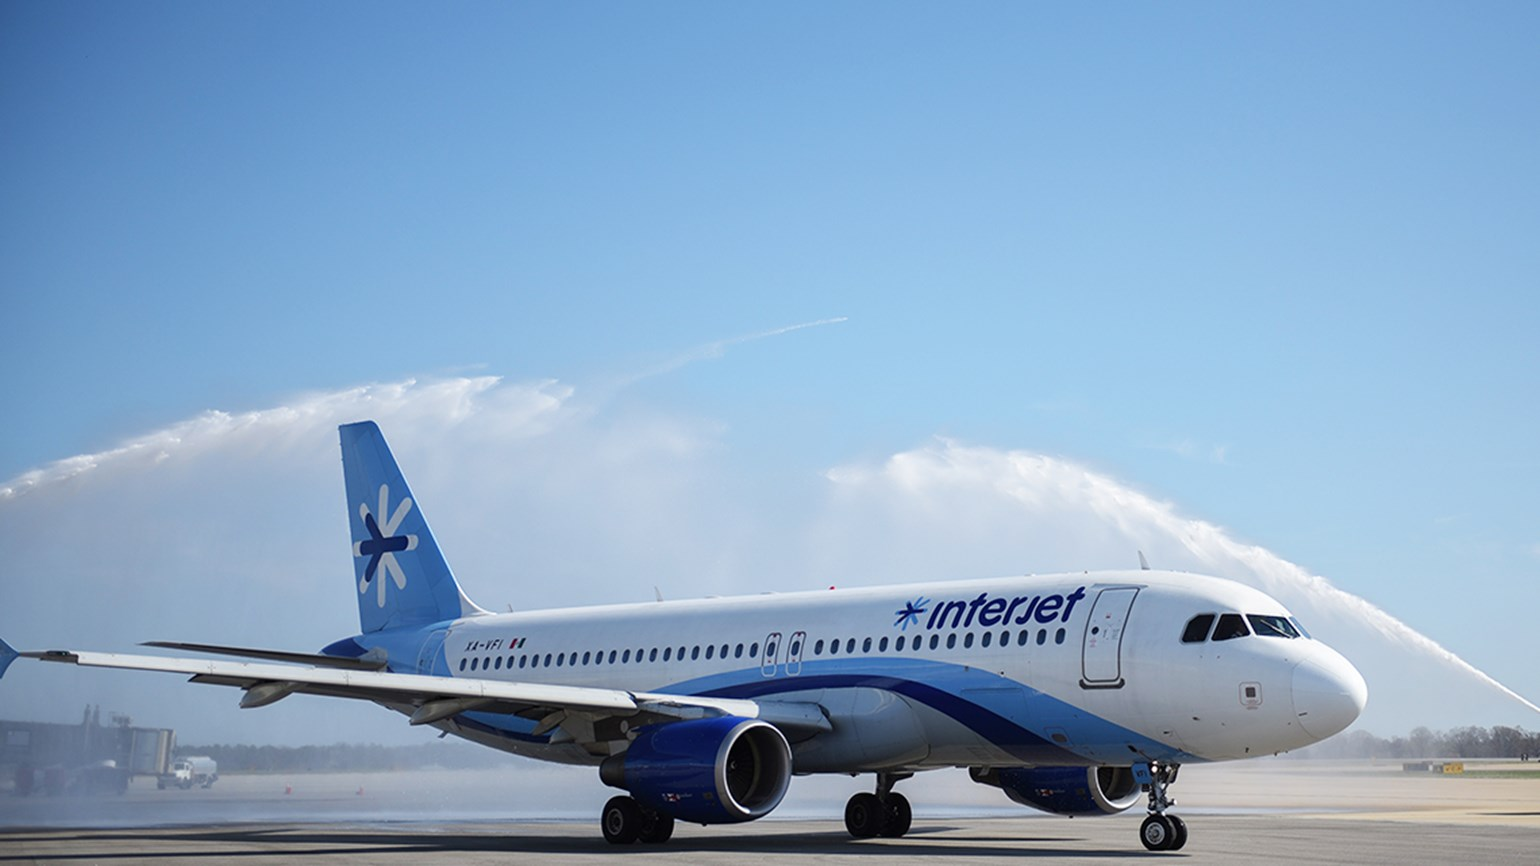 Vacation Express partners with Interjet on Mexico packages